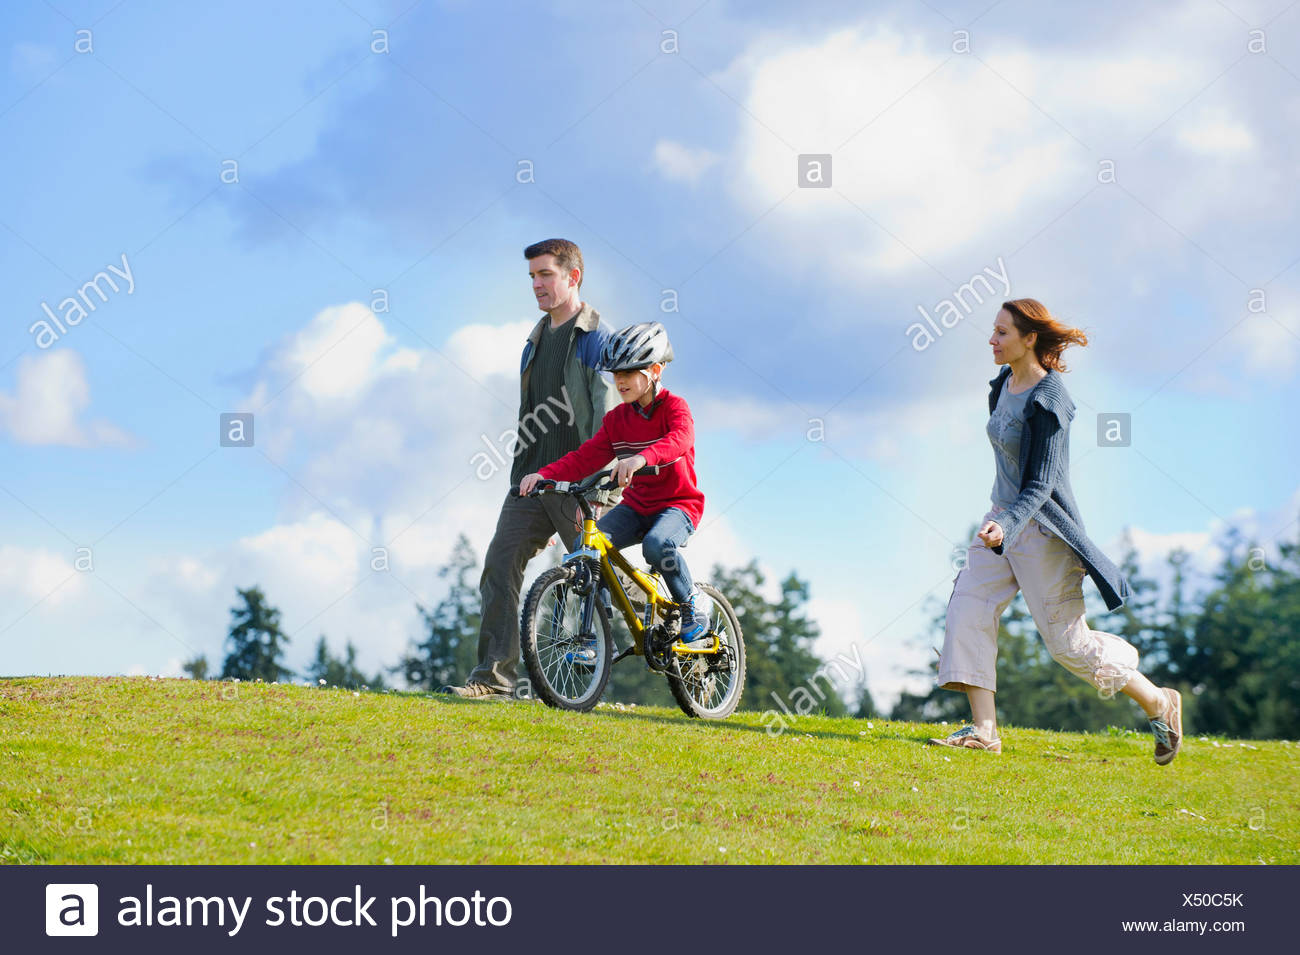 Parents keeping up with son riding bicycle - Stock Image